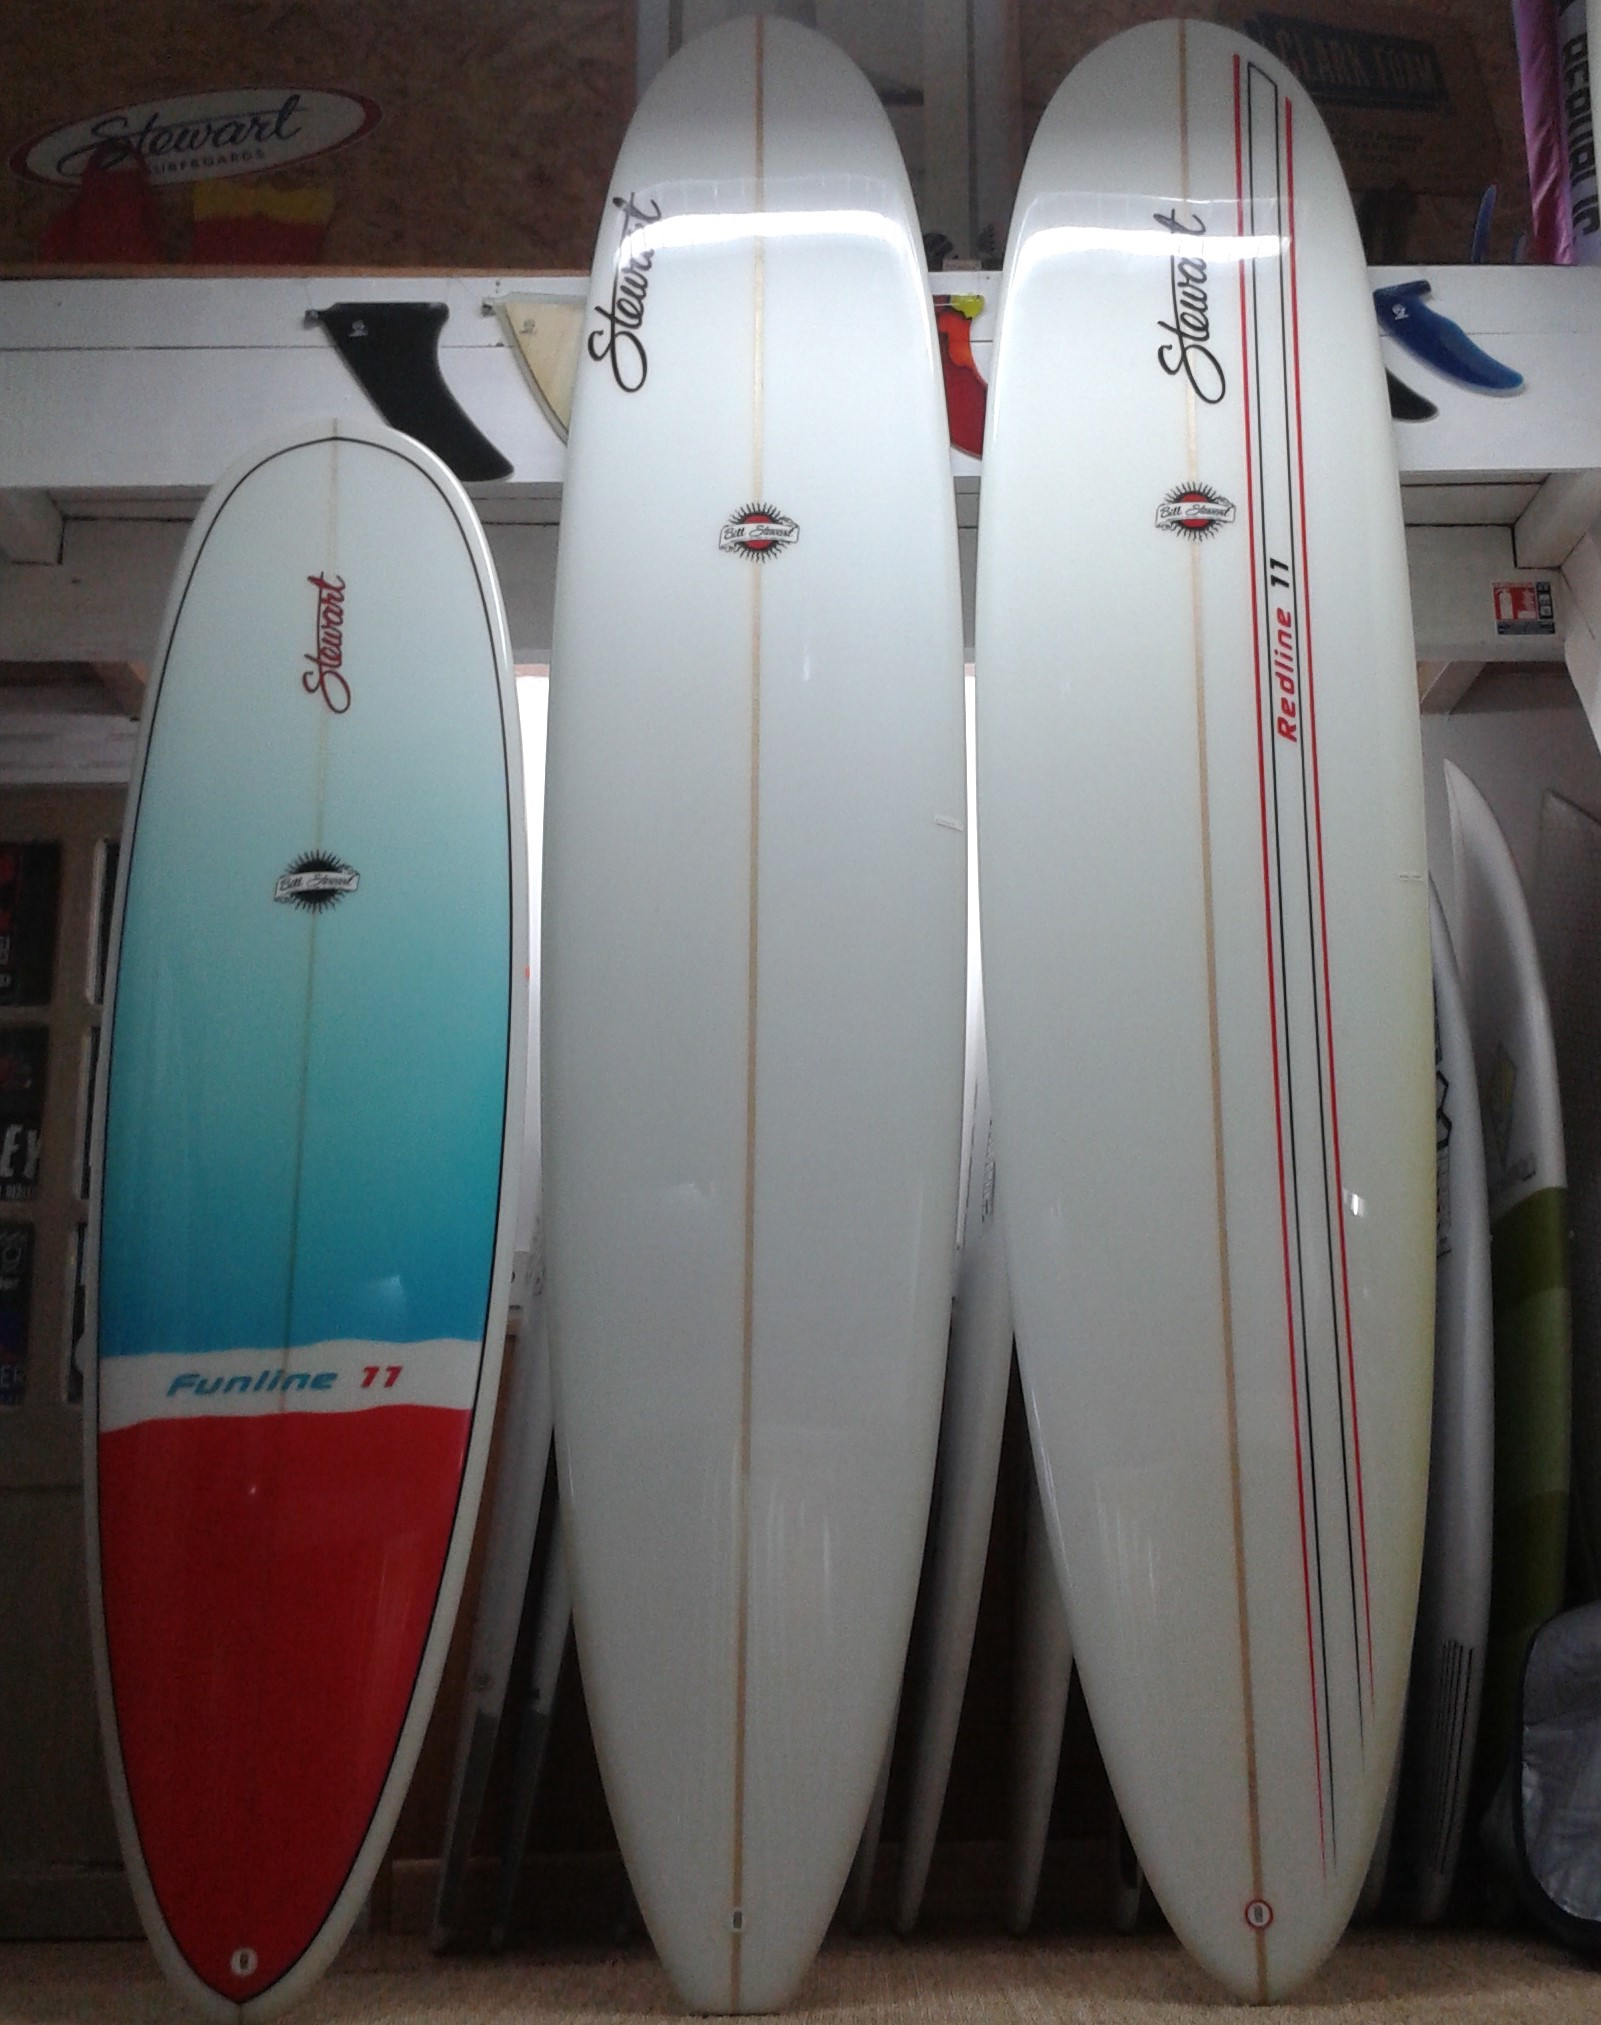 stewart-novafun surf boards